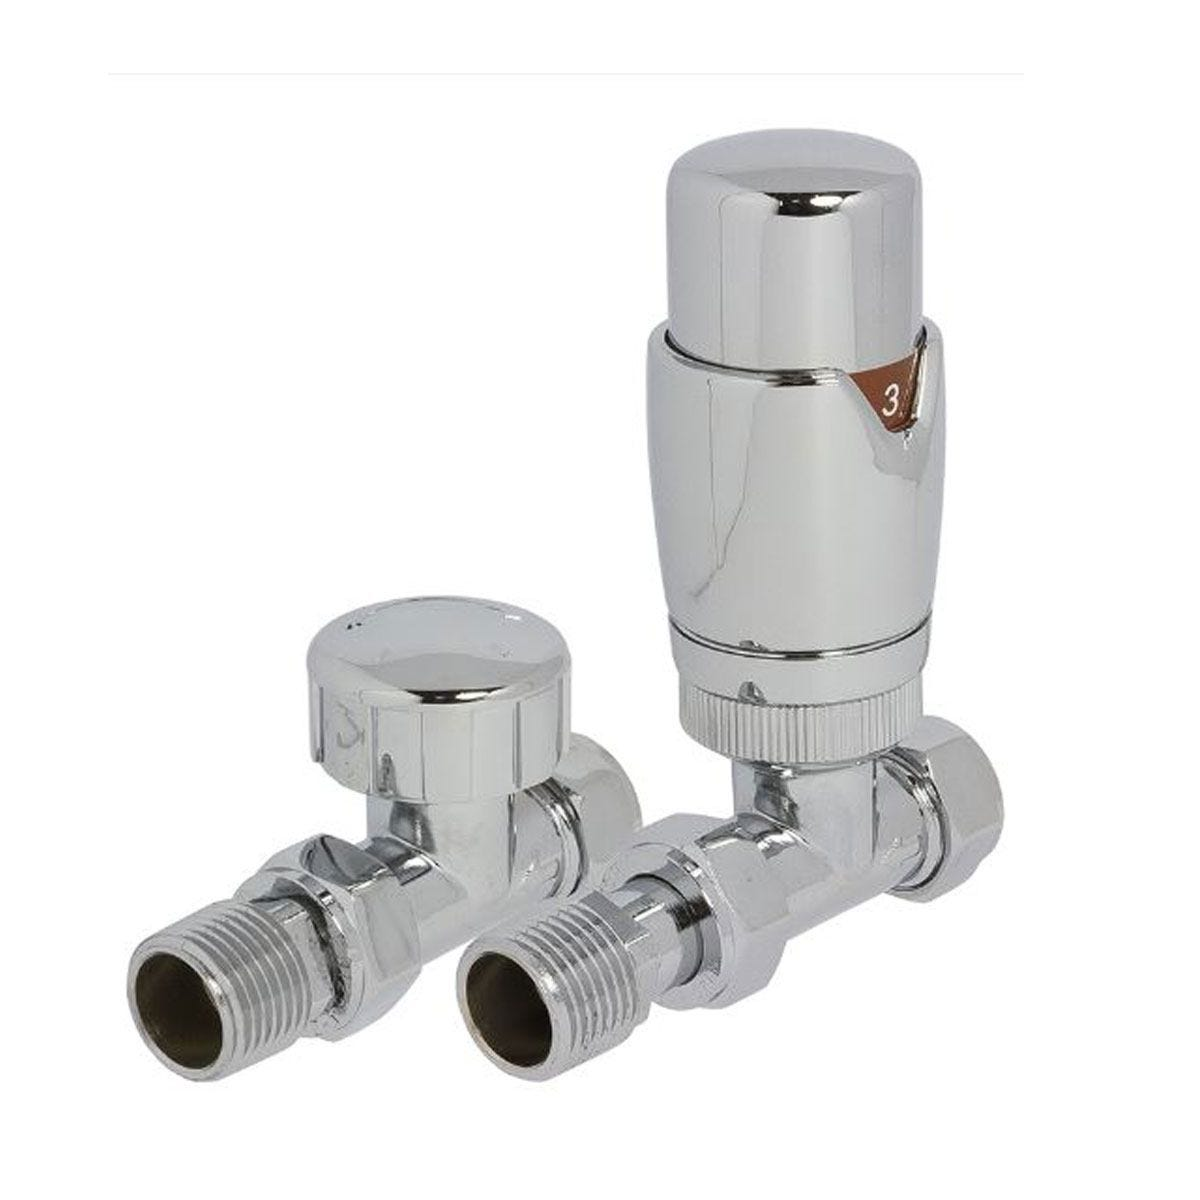 Heating Style Round Straight TRV and LS Radiator Valves - Chrome